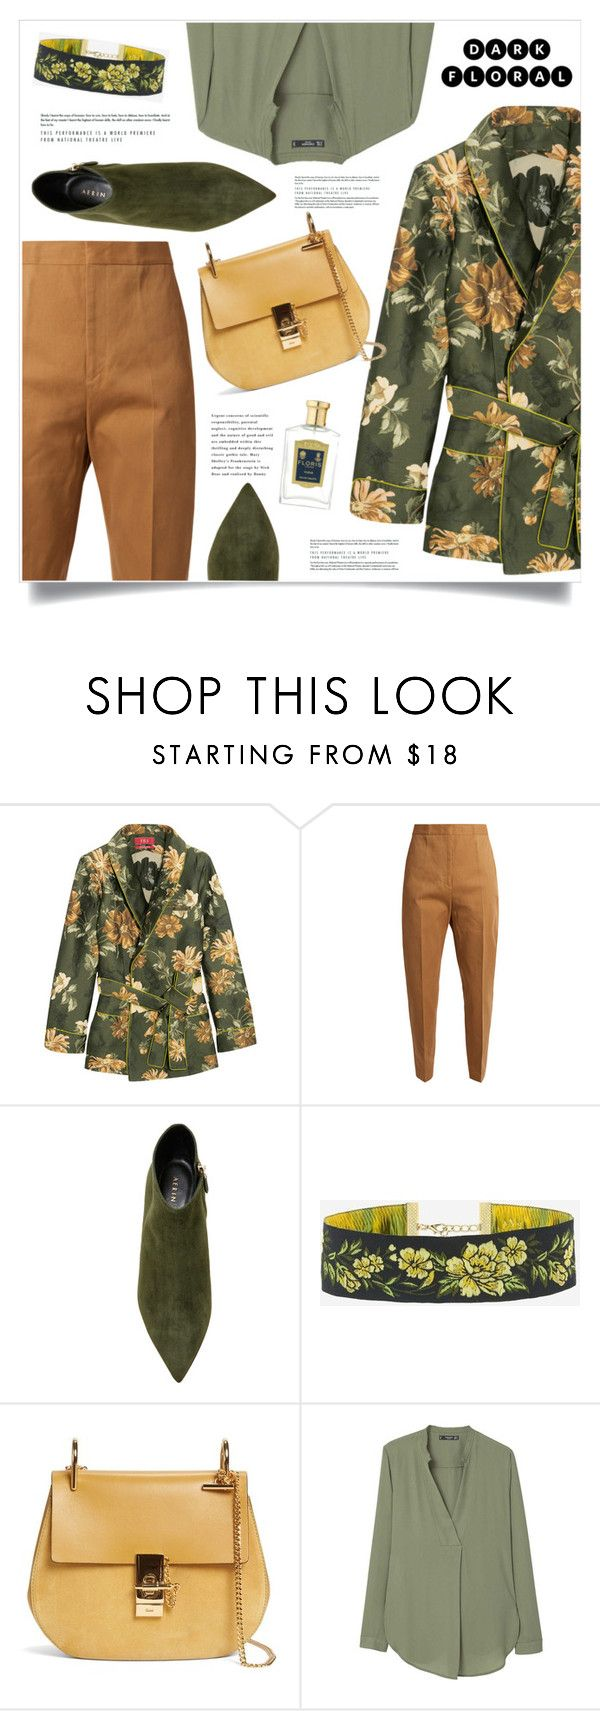 """In Bloom: Dark Florals"" by marina-volaric ❤ liked on Polyvore featuring F.R.S For Restless Sleepers, Jil Sander, AERIN, Chloé, MANGO, Floris and darkflowers"